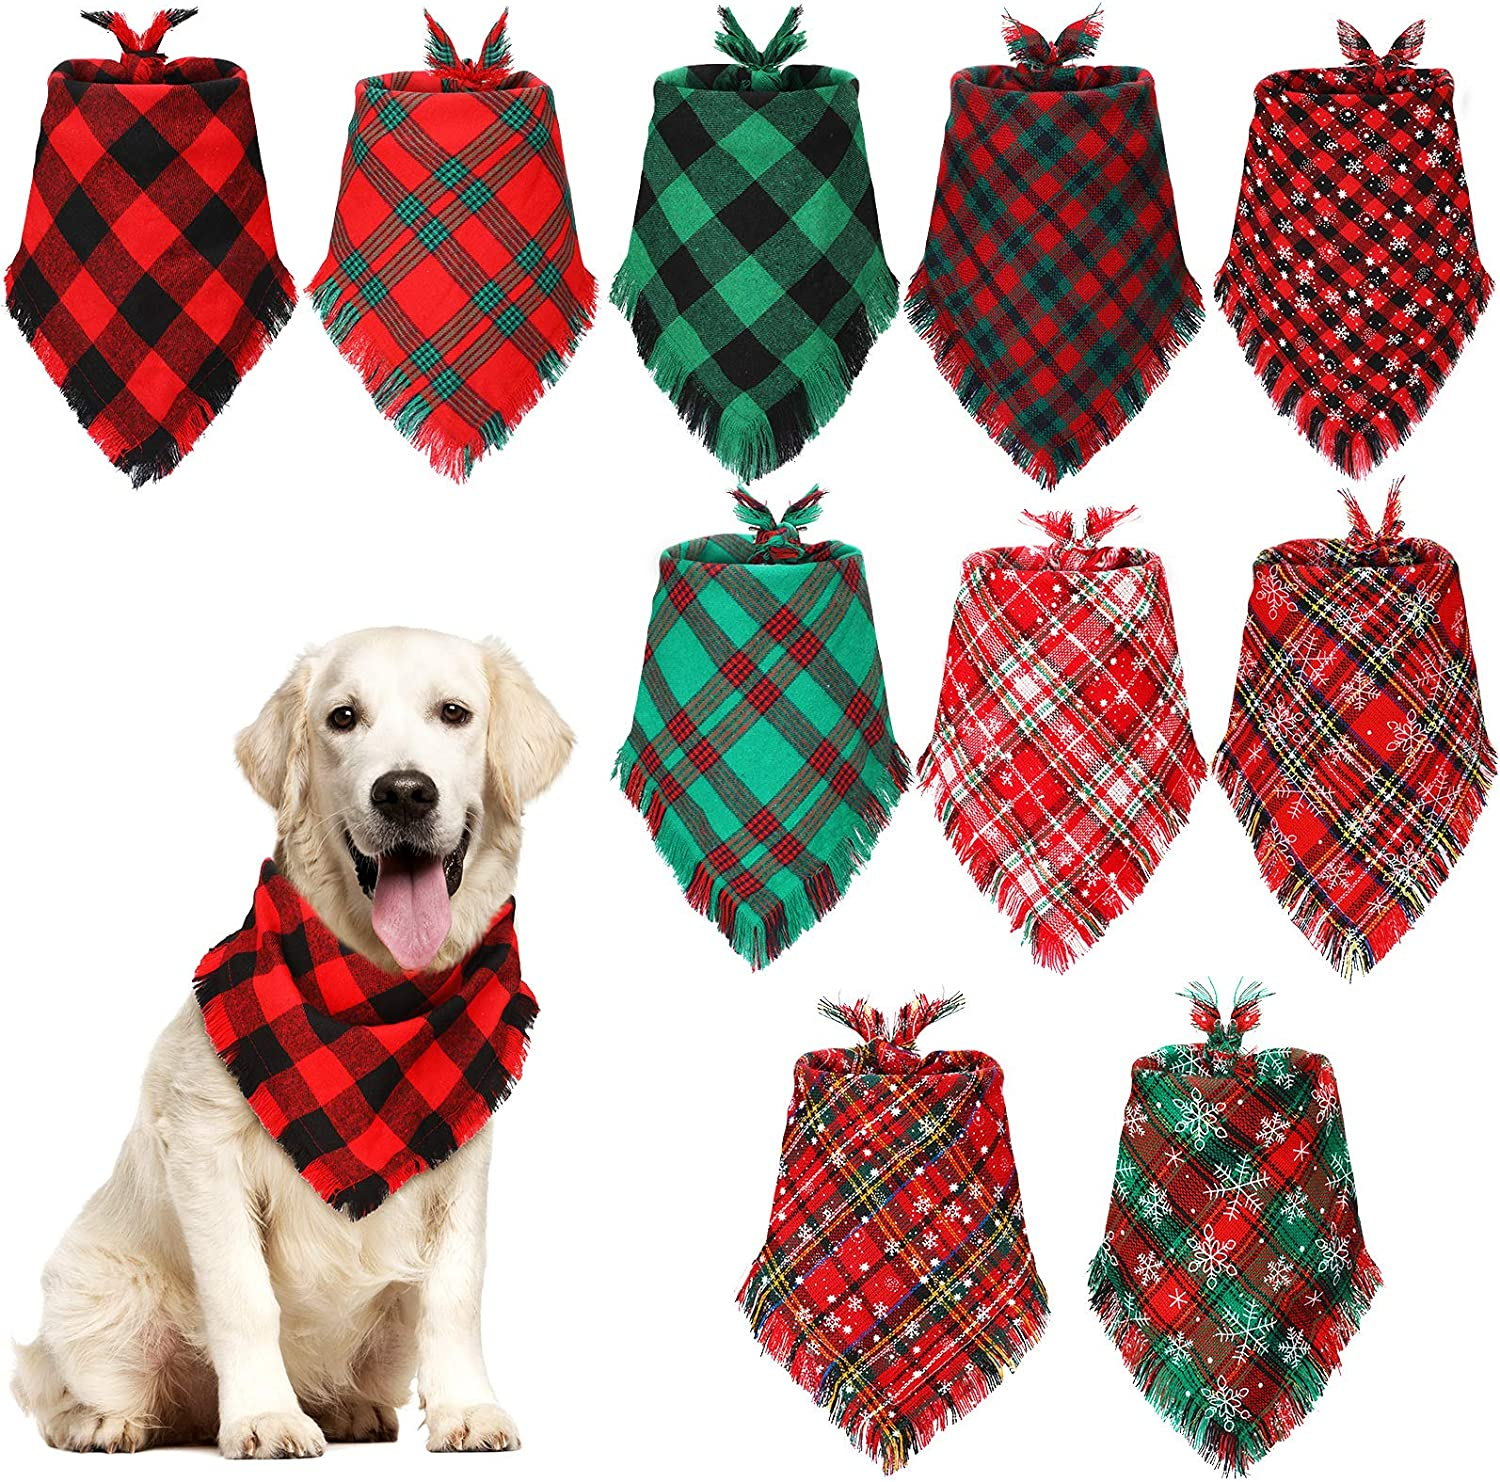 JPB Dog Christmas Bandanas Plaid Reversible Triangle Bibs Scarf Accessories for Dogs Cats